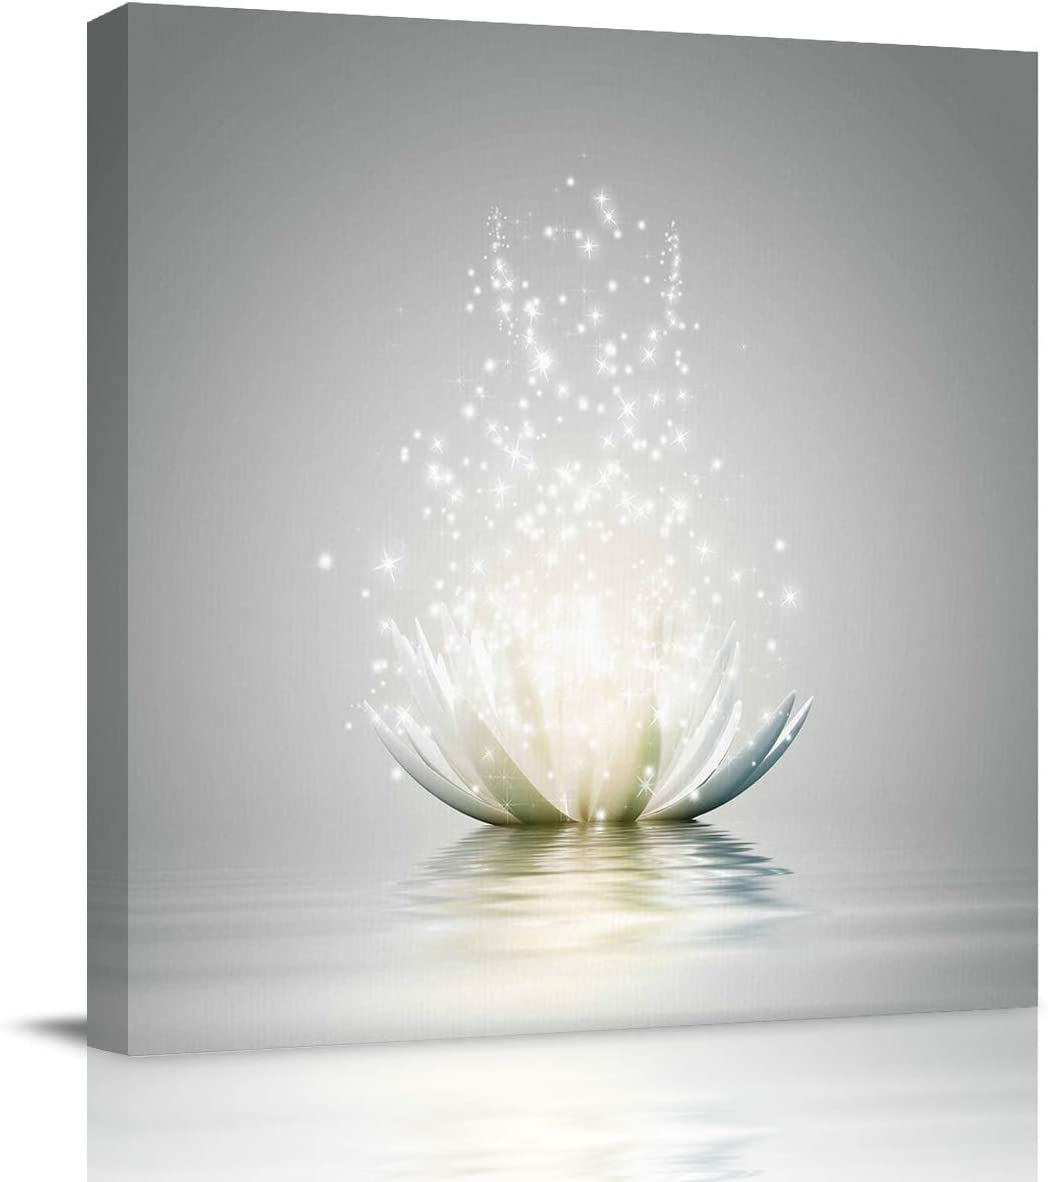 HIYPLAY Canvas Wall Art White Lotus Flower Meditation Picture Modern Artwork Printed on Canvas - Oil Painting for Wall Decor - Stretched and Framed Ready to Hang(12